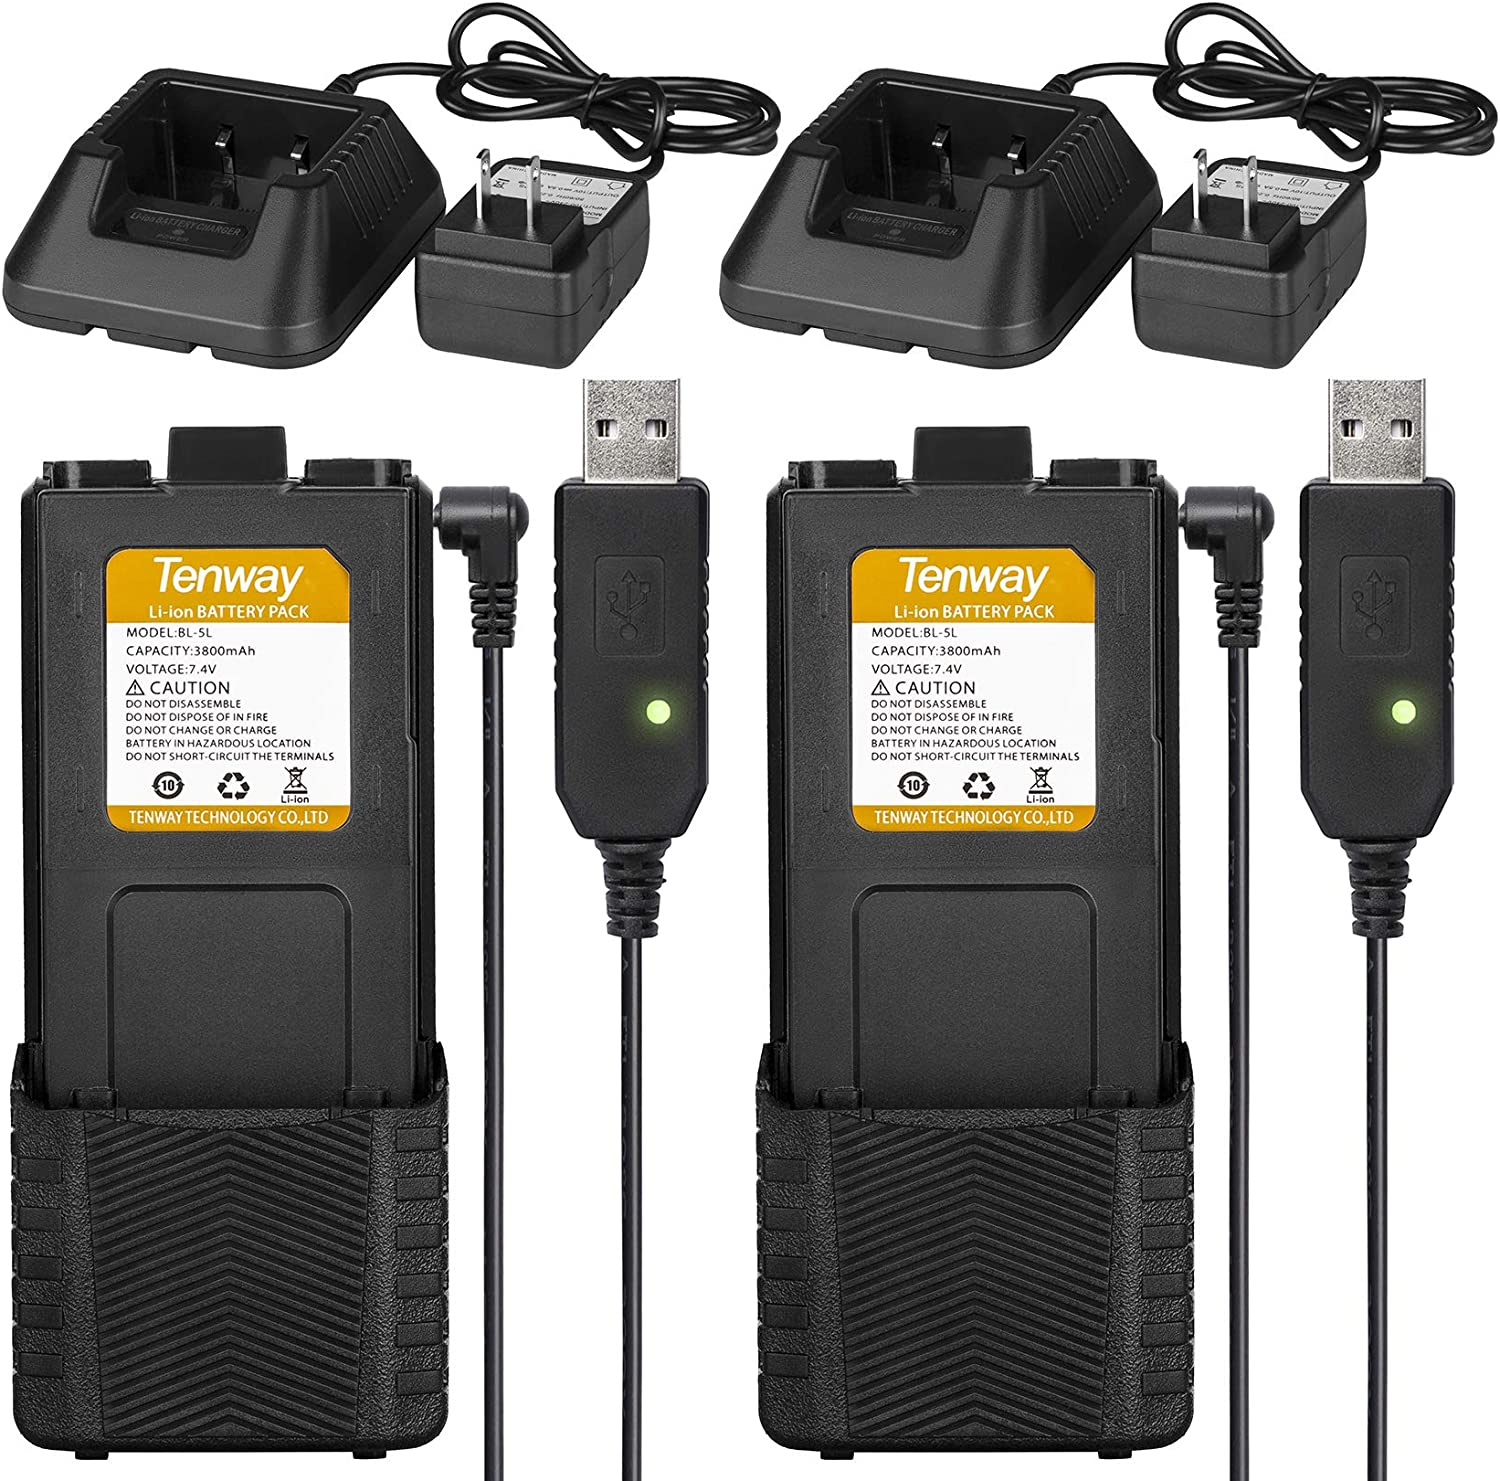 2Pcs Extended Batteries BL-5L 3800 mAh Rechargeable Battery with USB Charging Cable and Battery Chargers Compatible with BAOFENG UV-5R BF-F8HP UV-5RX3 RD-5R UV-5RTP UV-5R+, UV-5X3 by Tenway